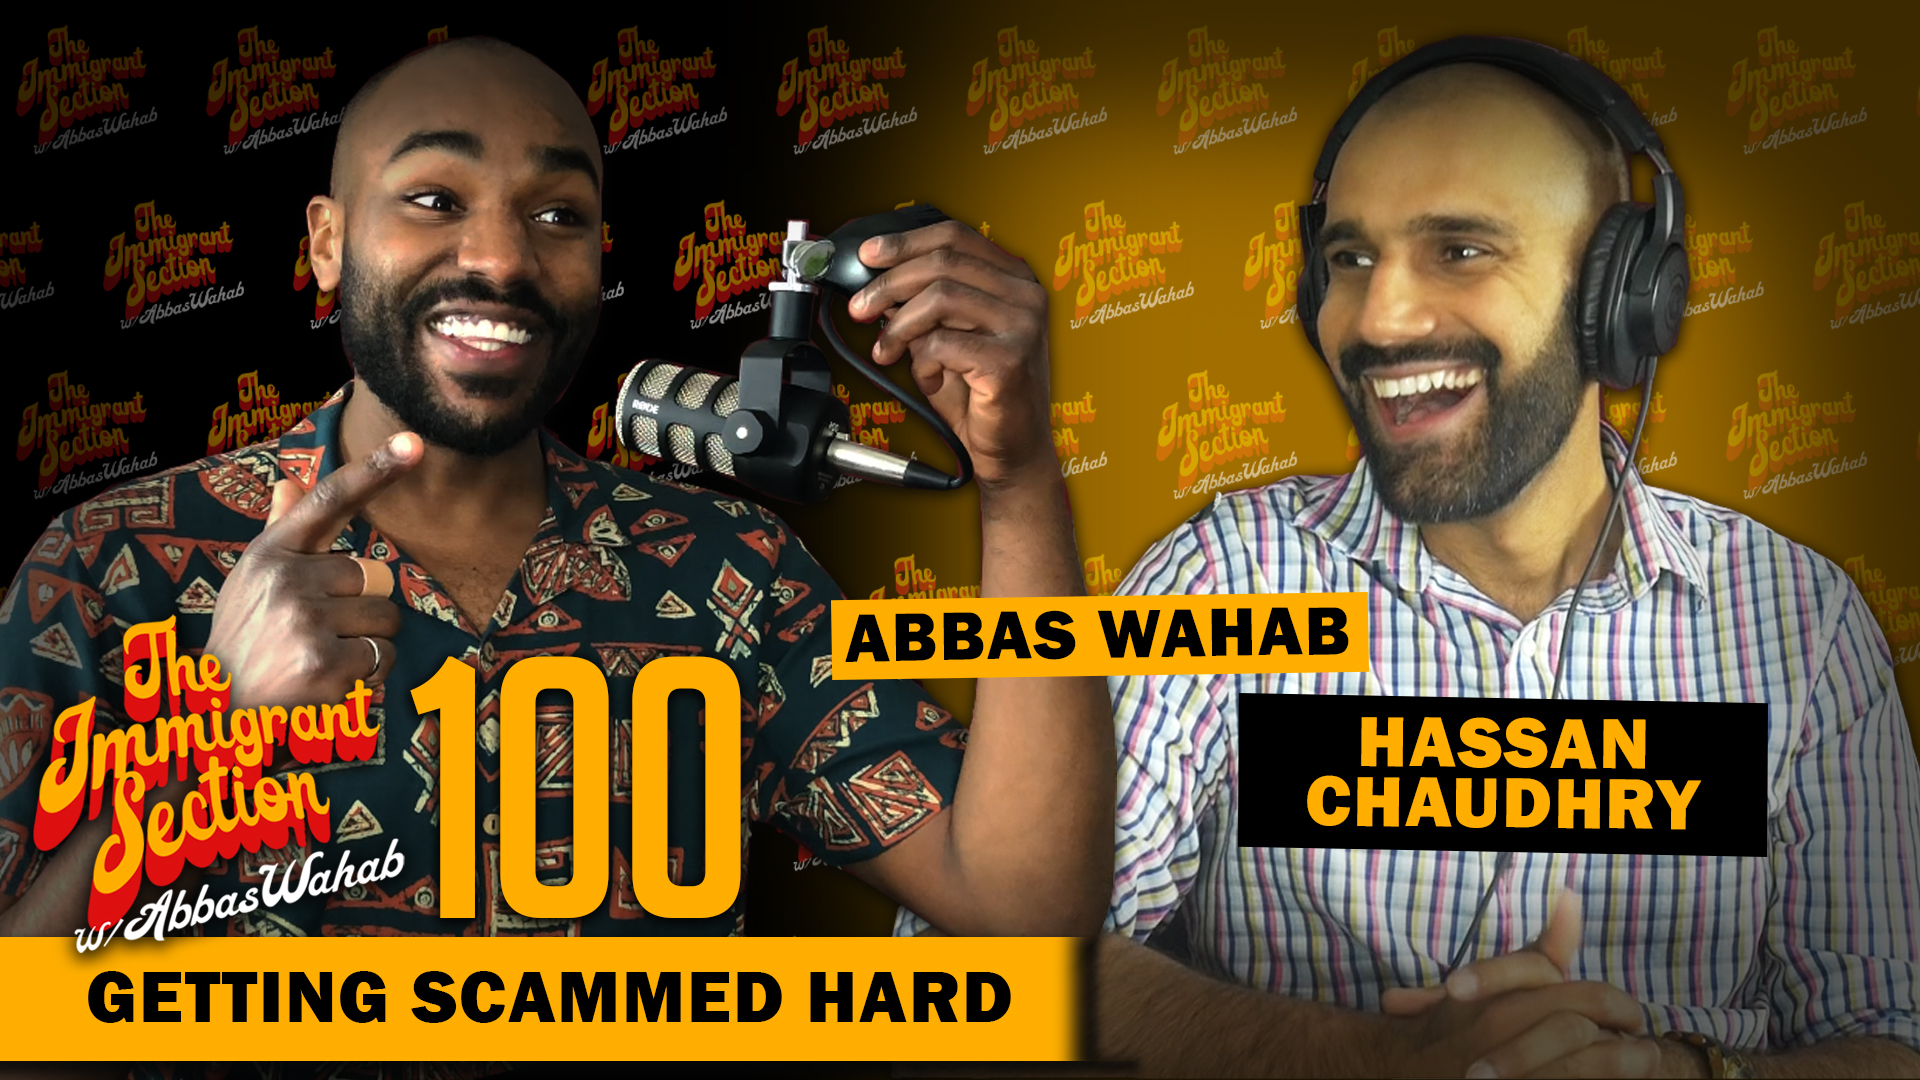 Getting Scammed Hard - The Immigrant Section with Abbas Wahab